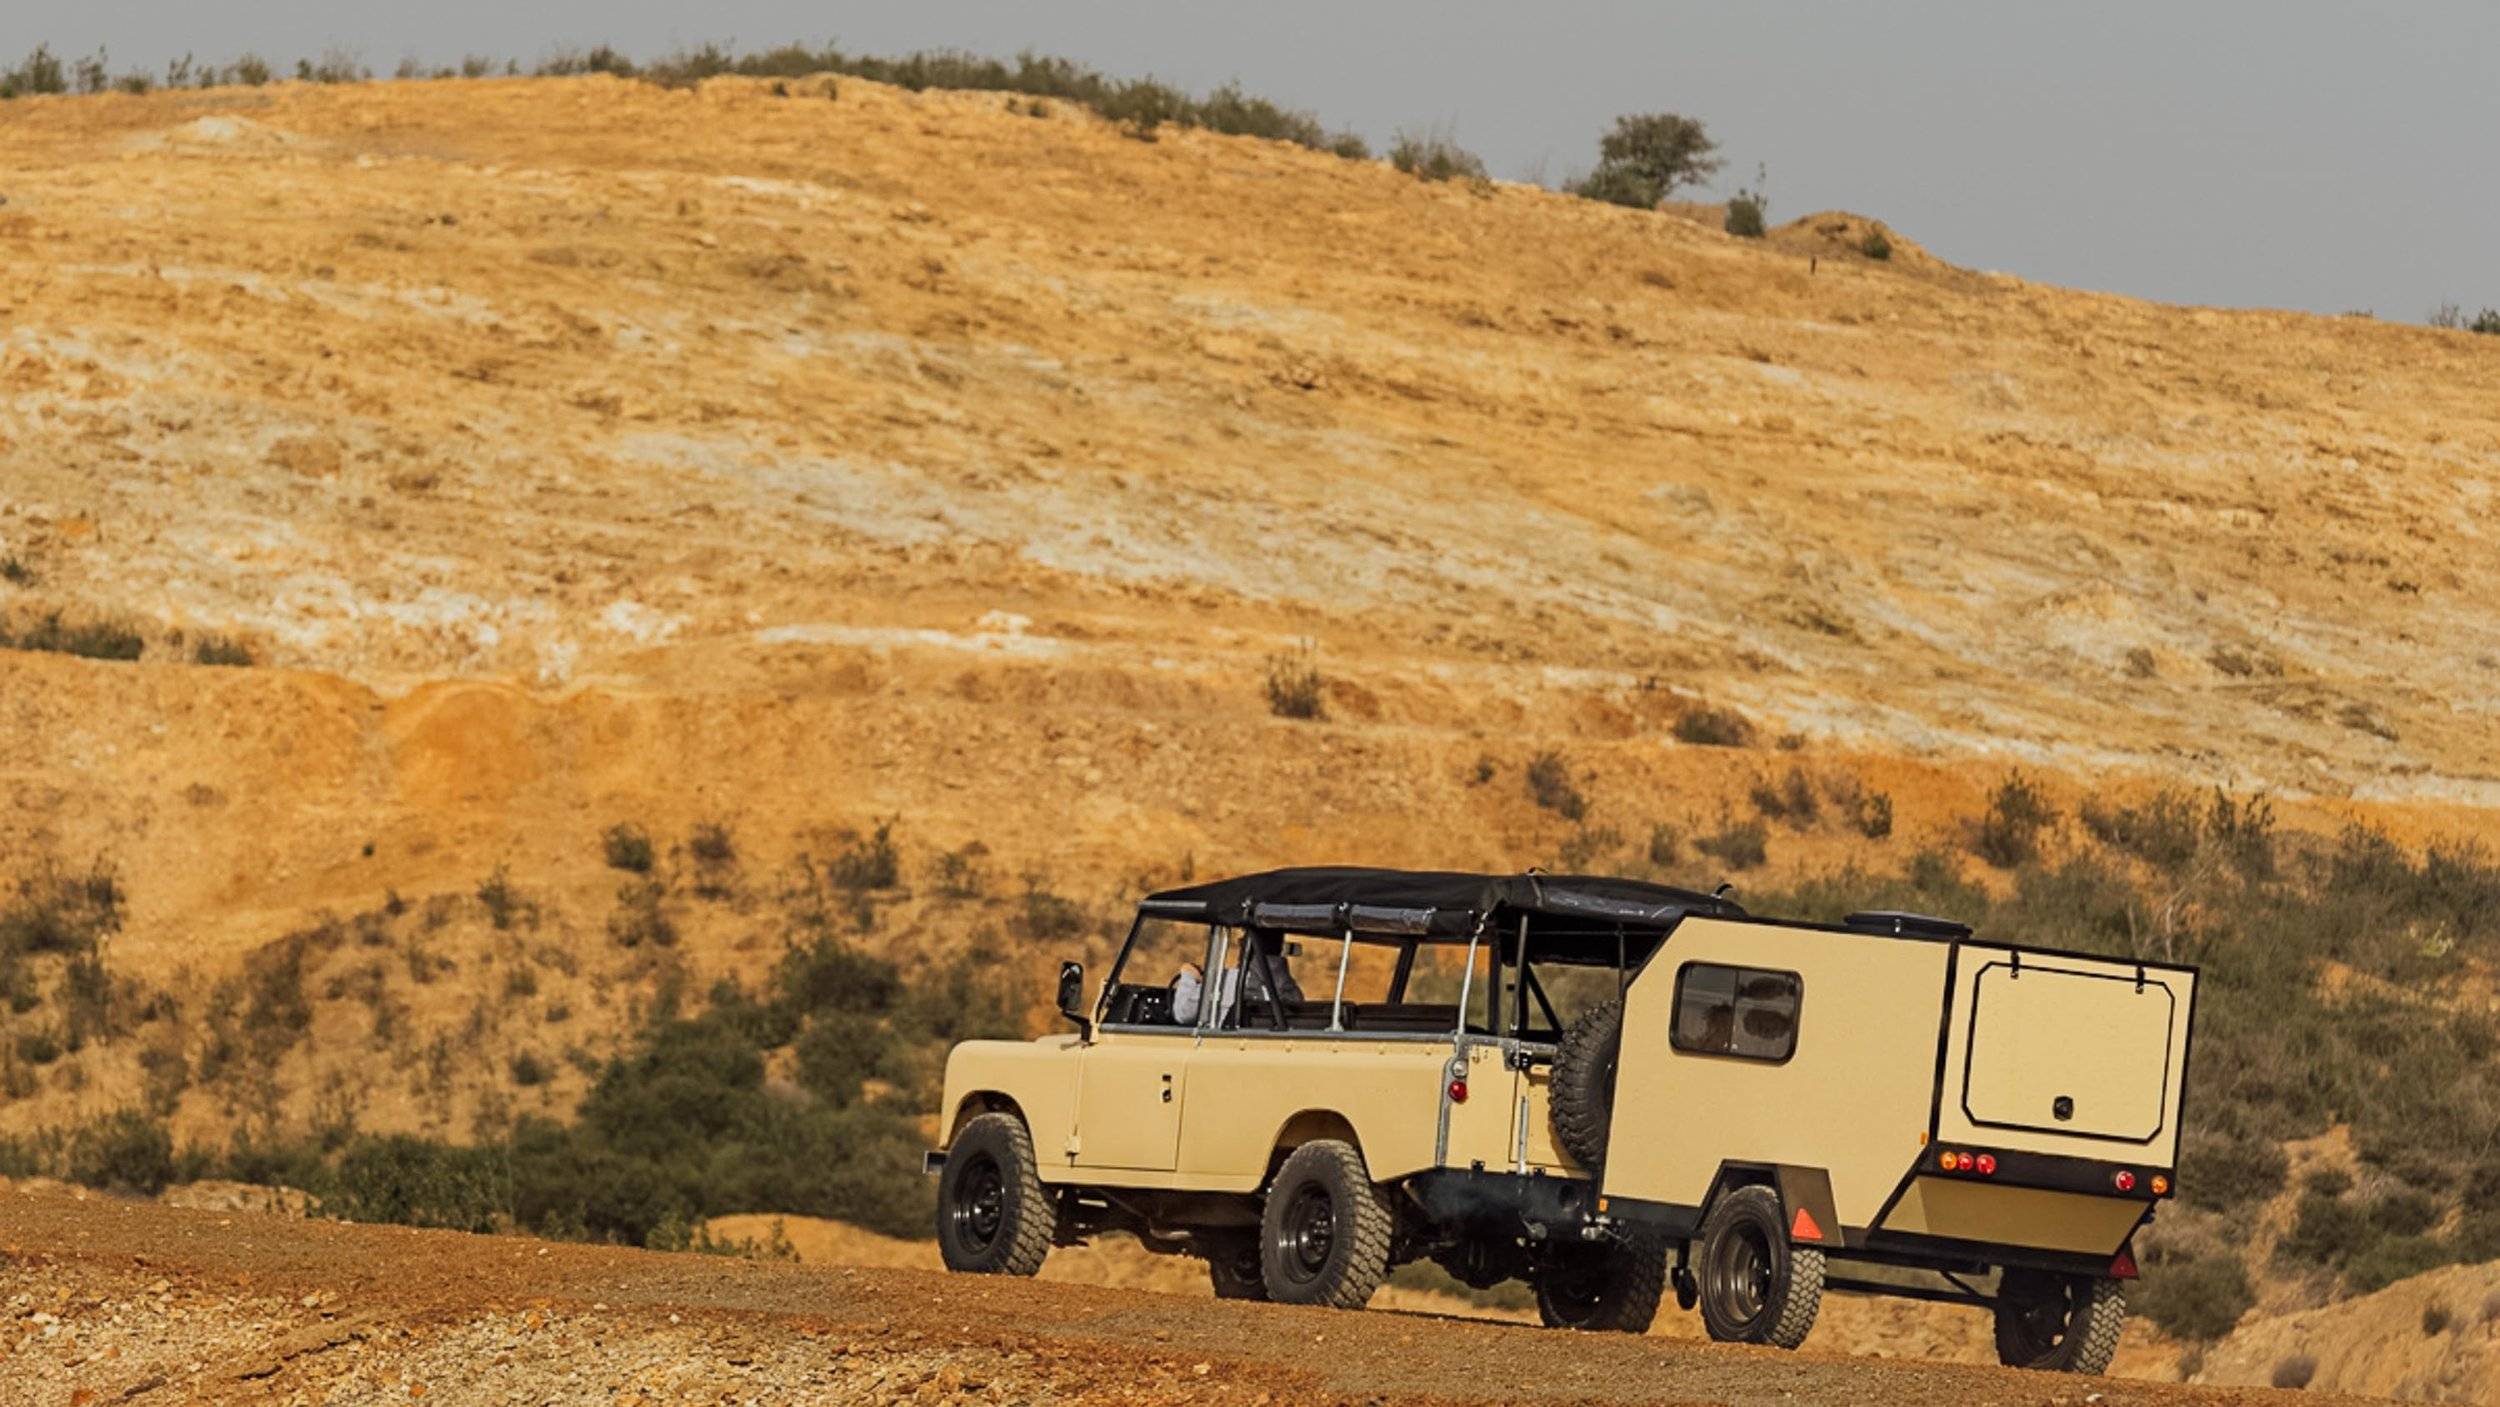 coolnvintage Land Rover S3 (207 of 207).jpg